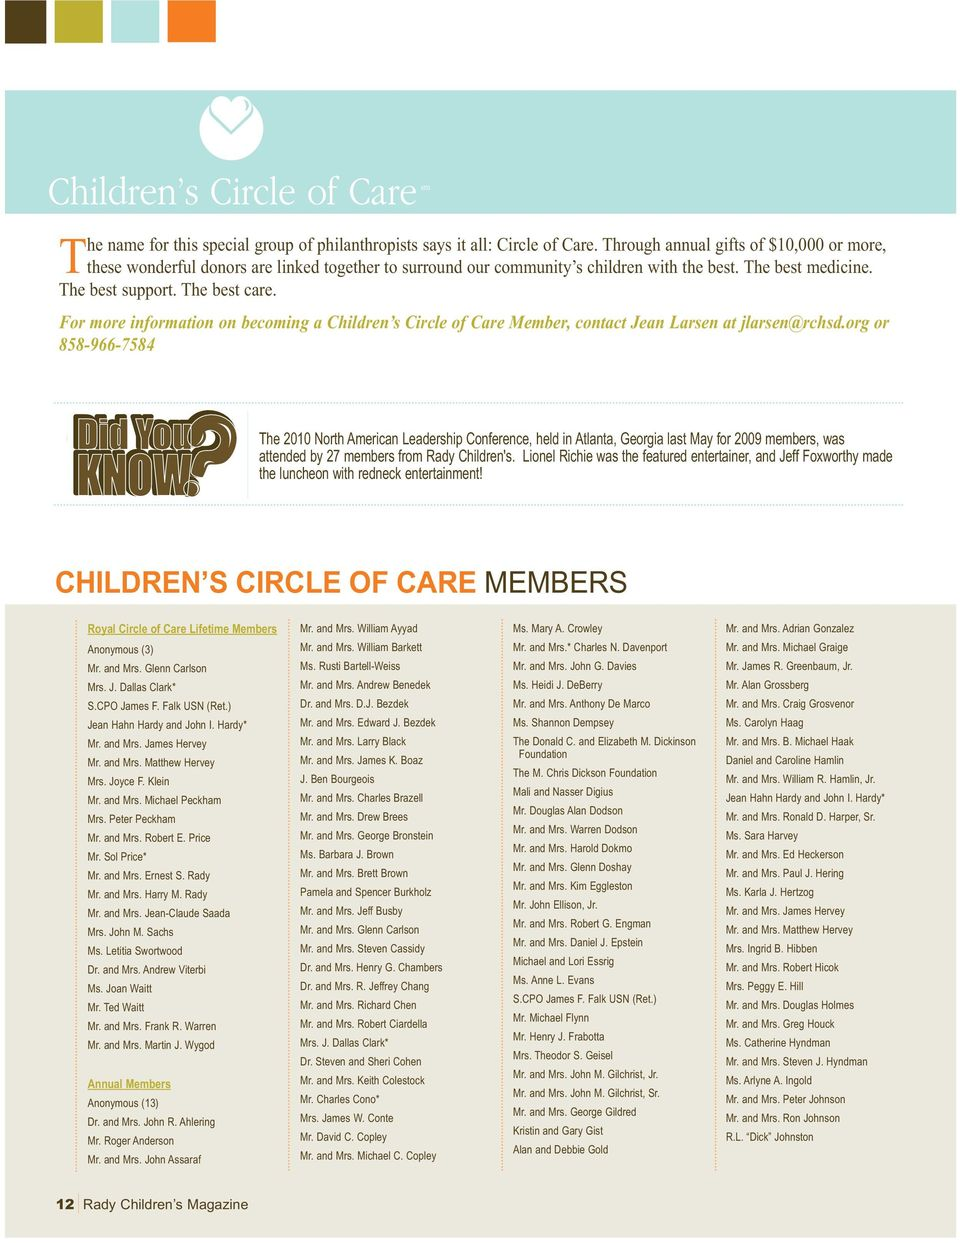 For more information on becoming a Children s Circle of Care Member, contact Jean Larsen at jlarsen@rchsd.